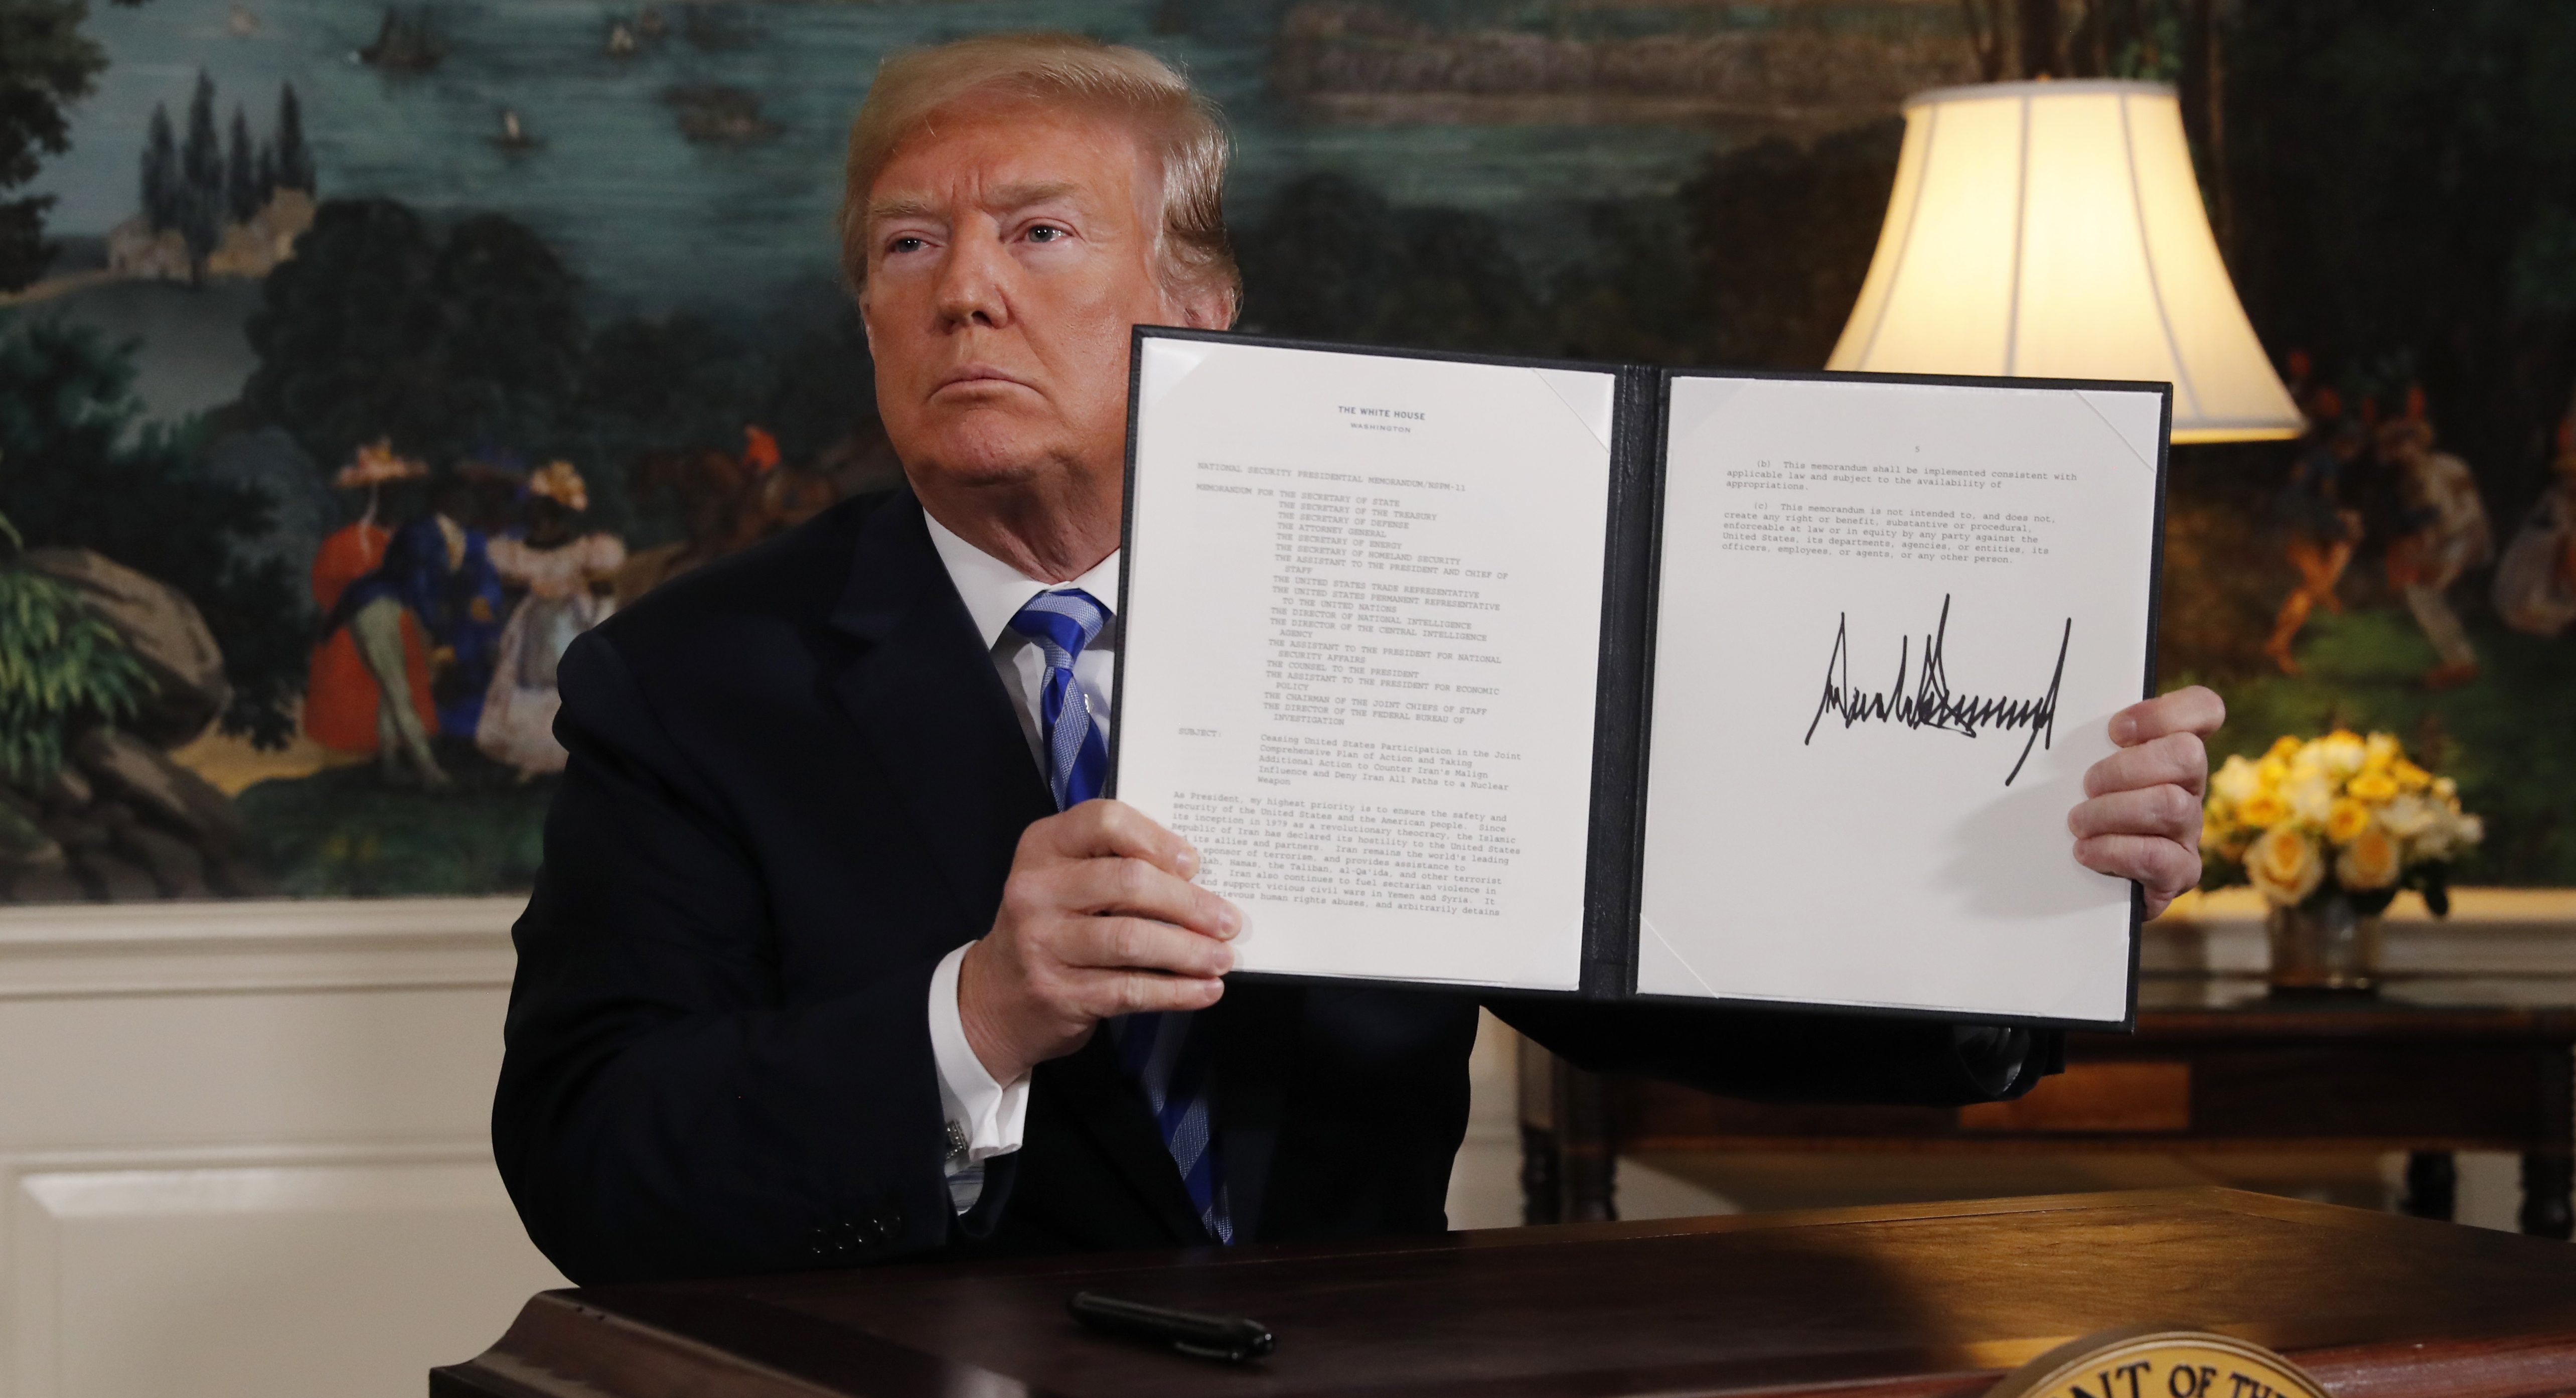 After dumping the nuclear deal, Trump has no strategy for Iran